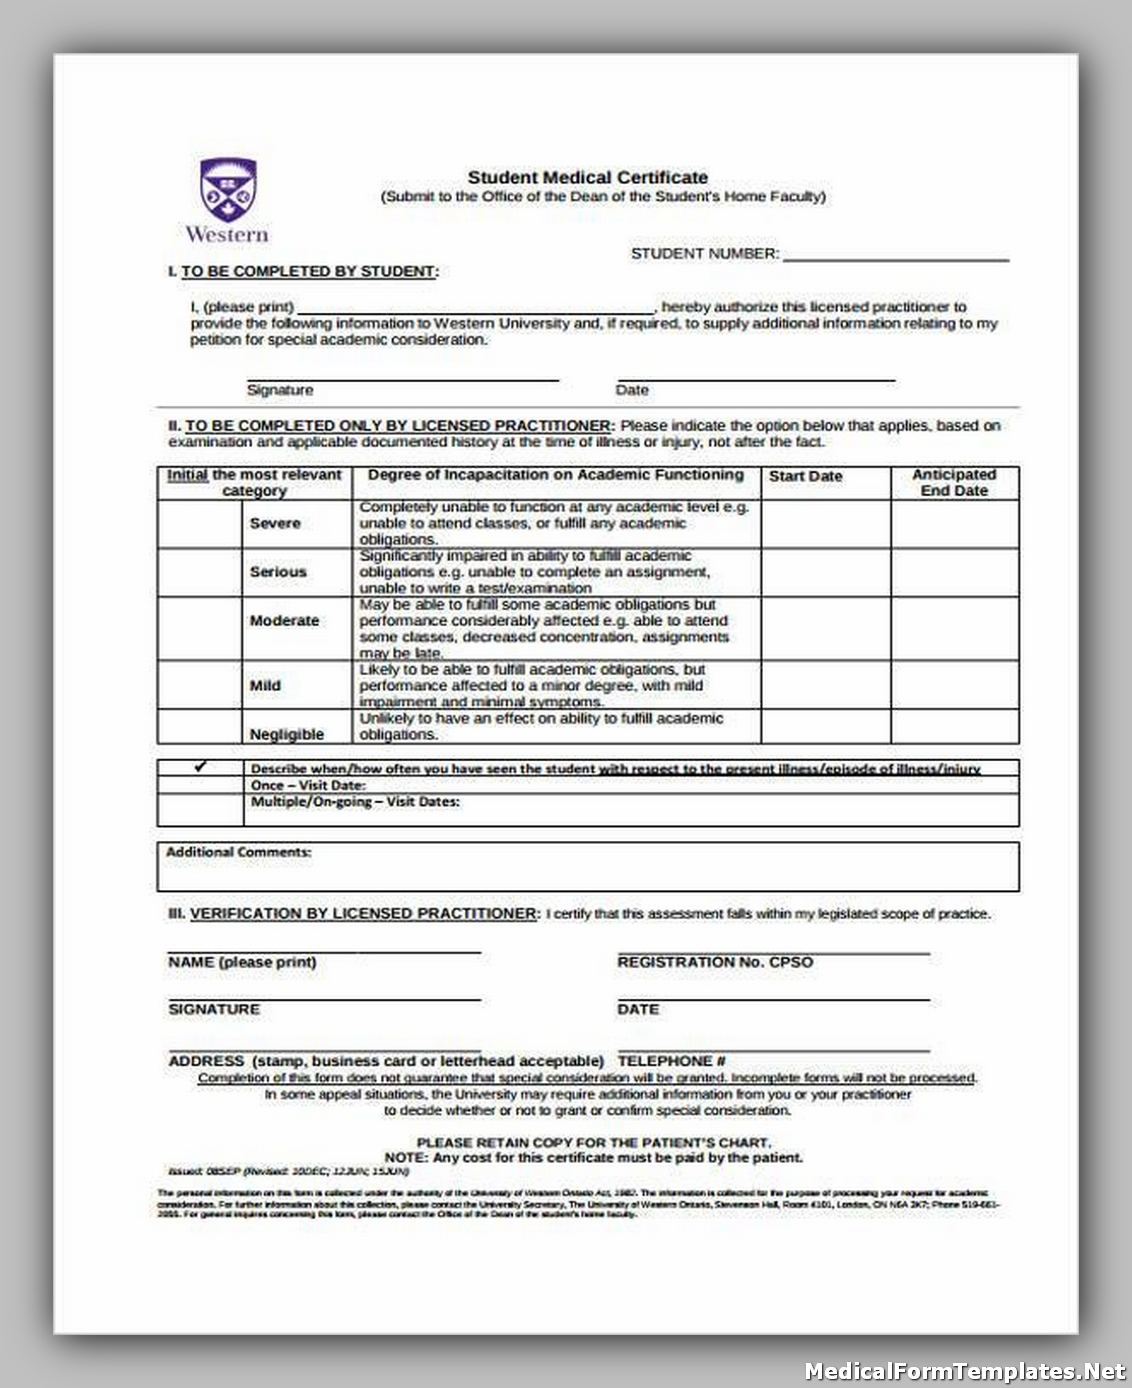 Student Medical Certificate Form1